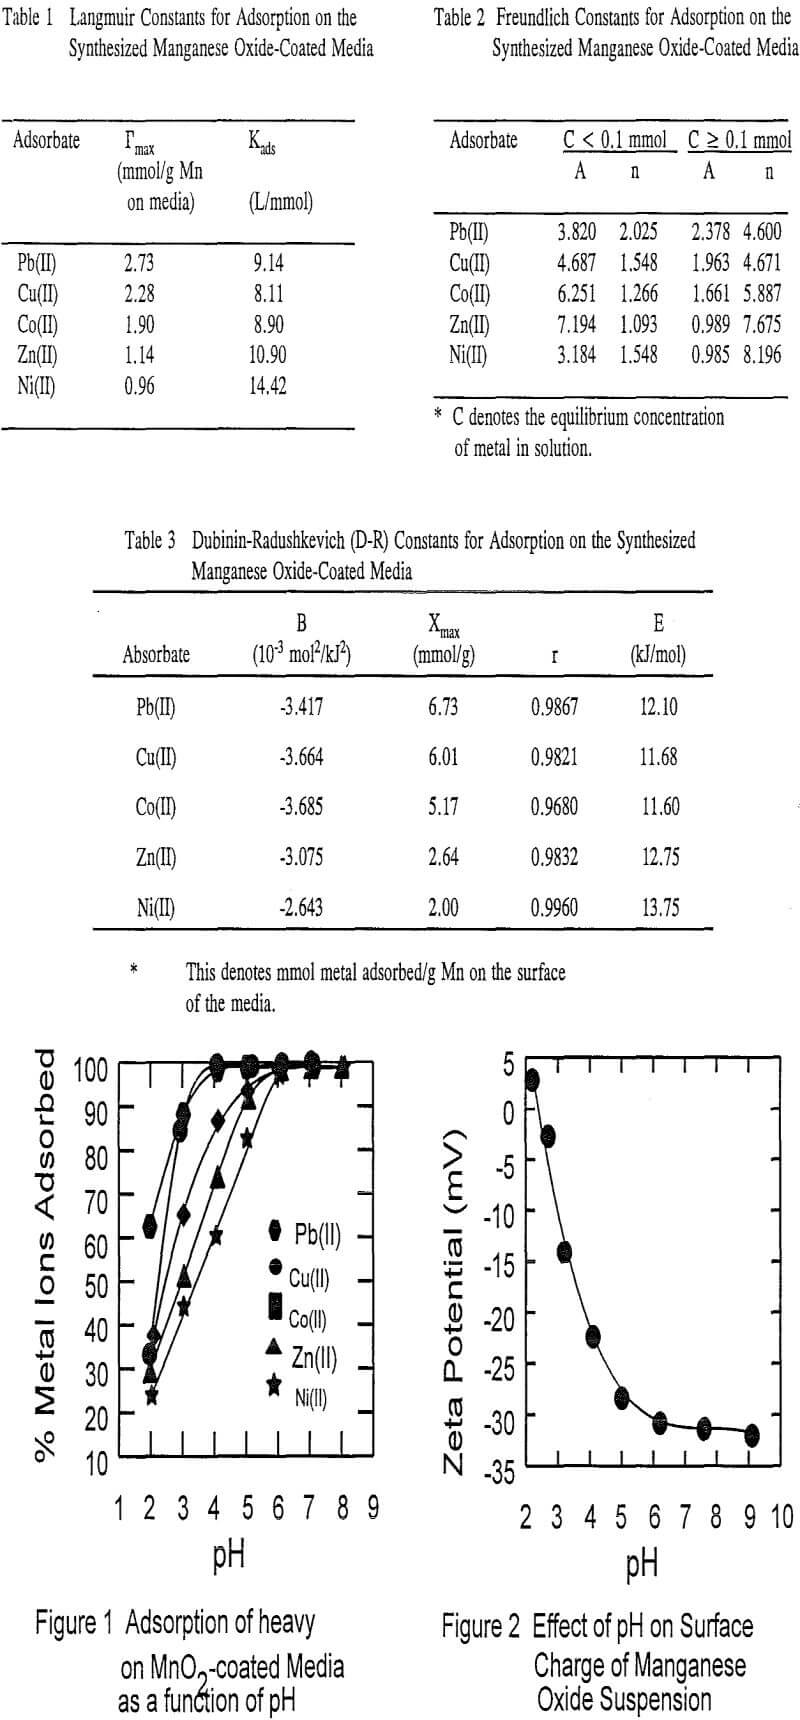 Adsorption of Heavy Metal Ions on Manganese Oxide Coated Media